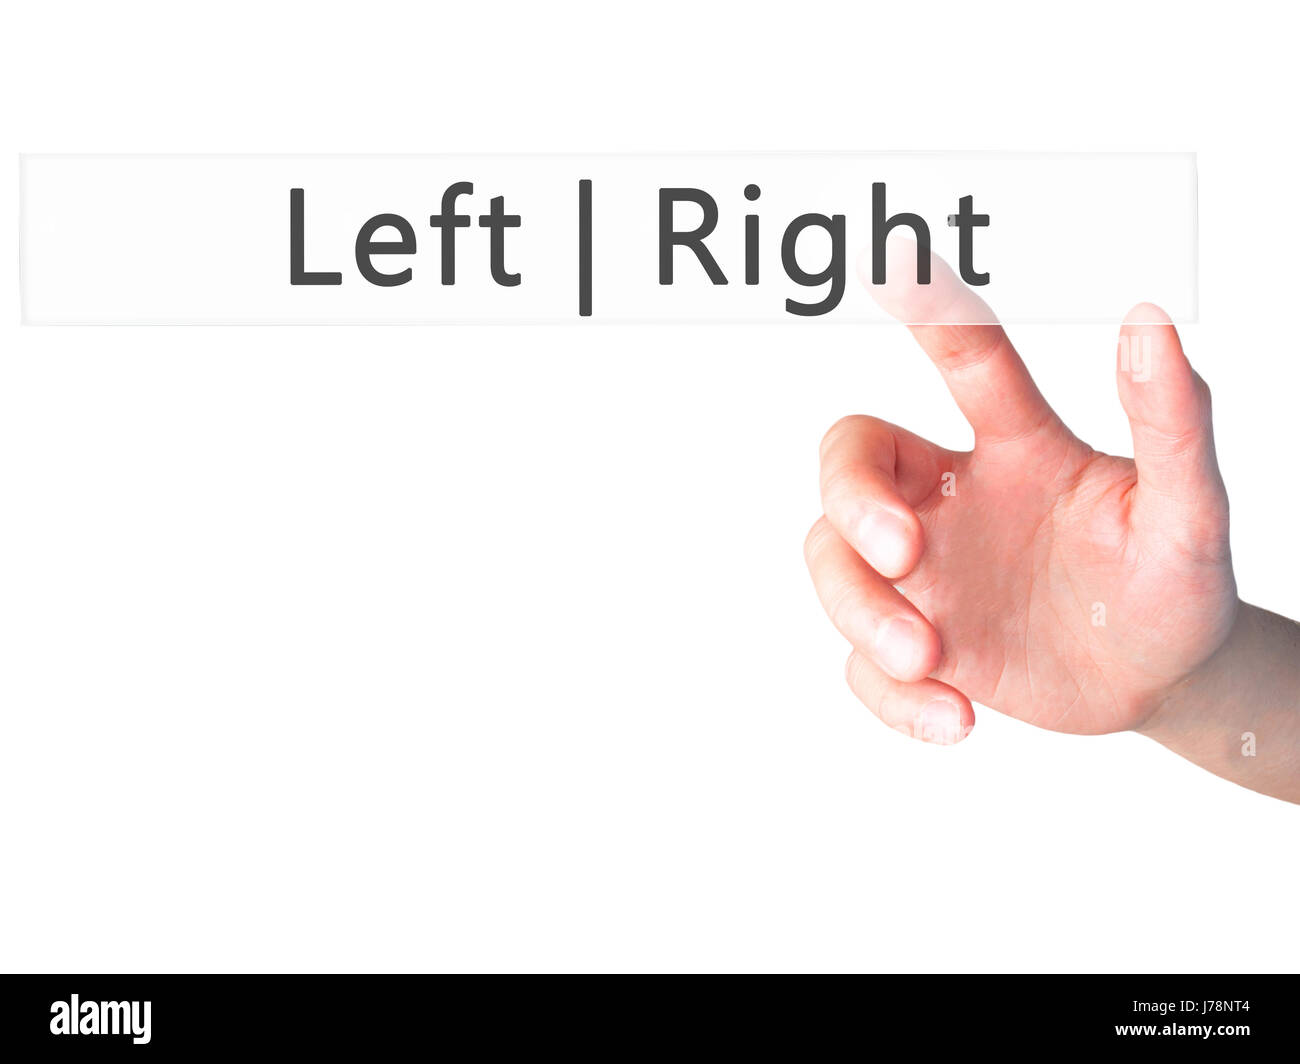 Left Right - Hand pressing a button on blurred background concept . Business, technology, internet concept. Stock - Stock Image